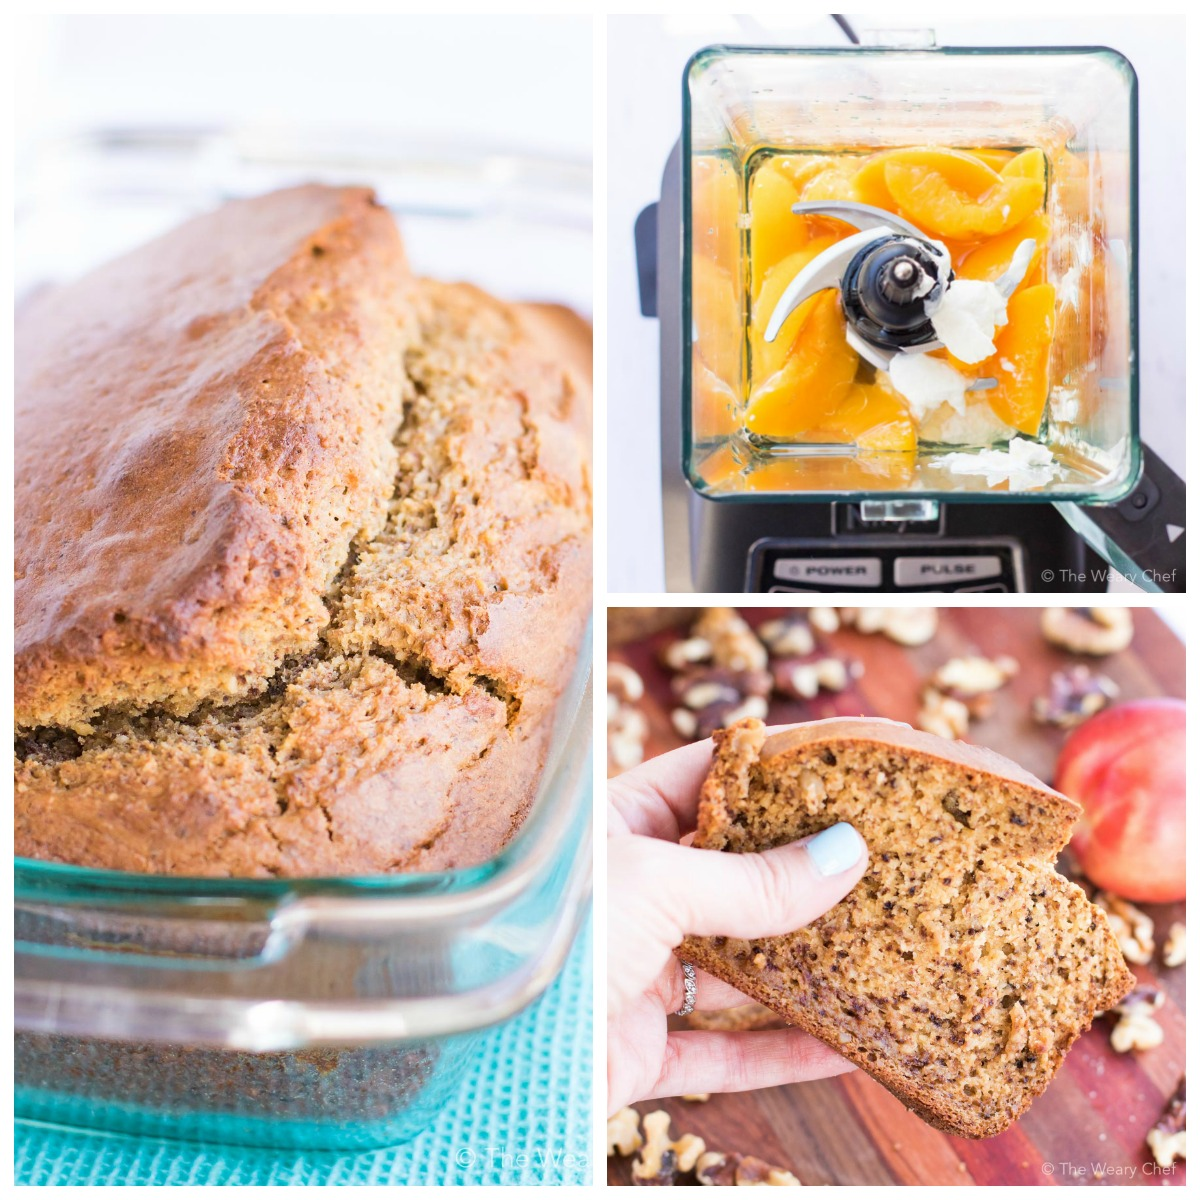 You'll love how easy it is to make this perfect peach bread with your blender!